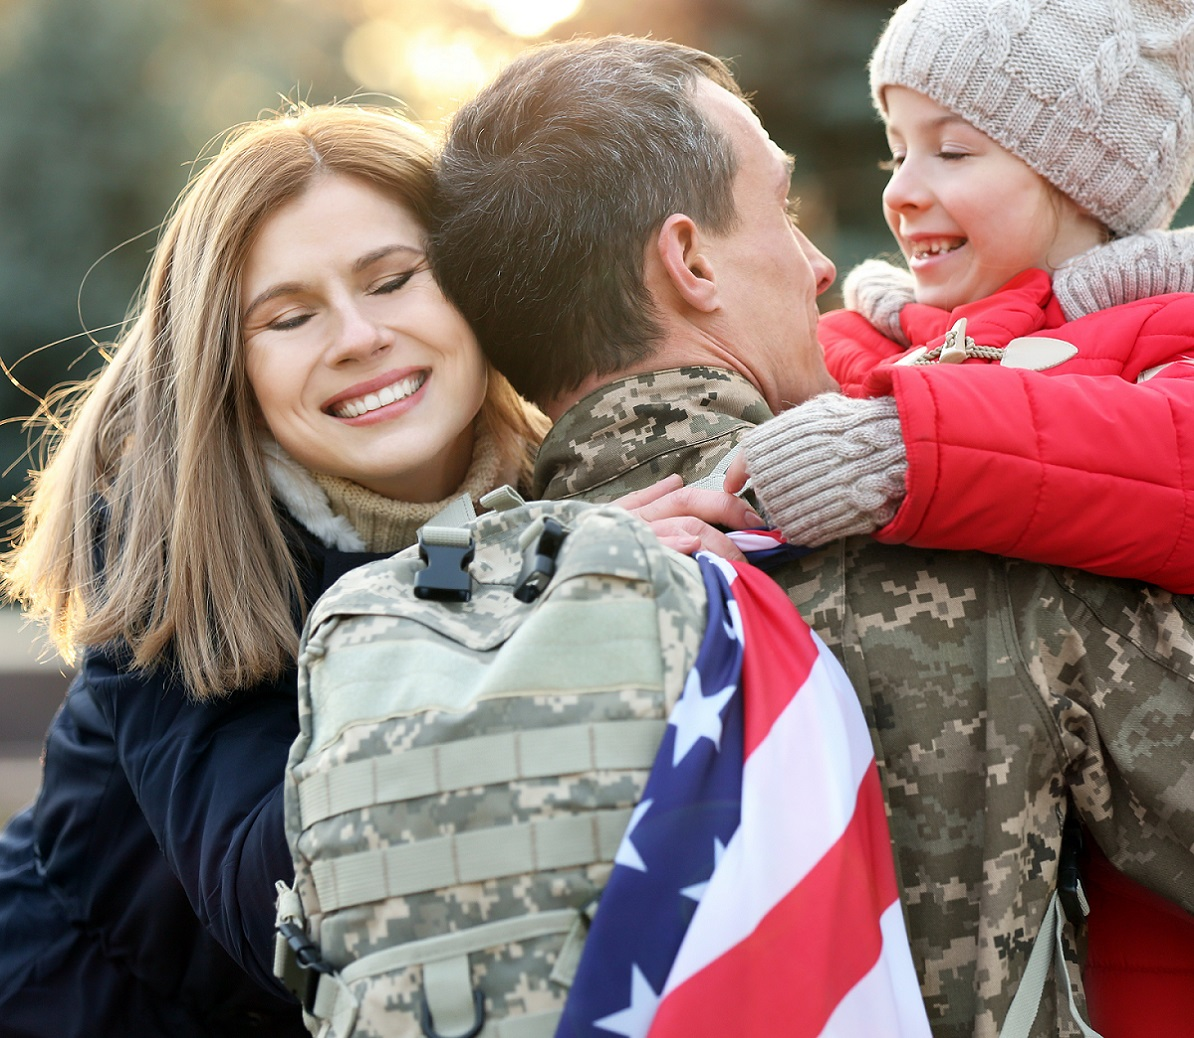 soldier hugging family in military uniform and flag draped over shoulder